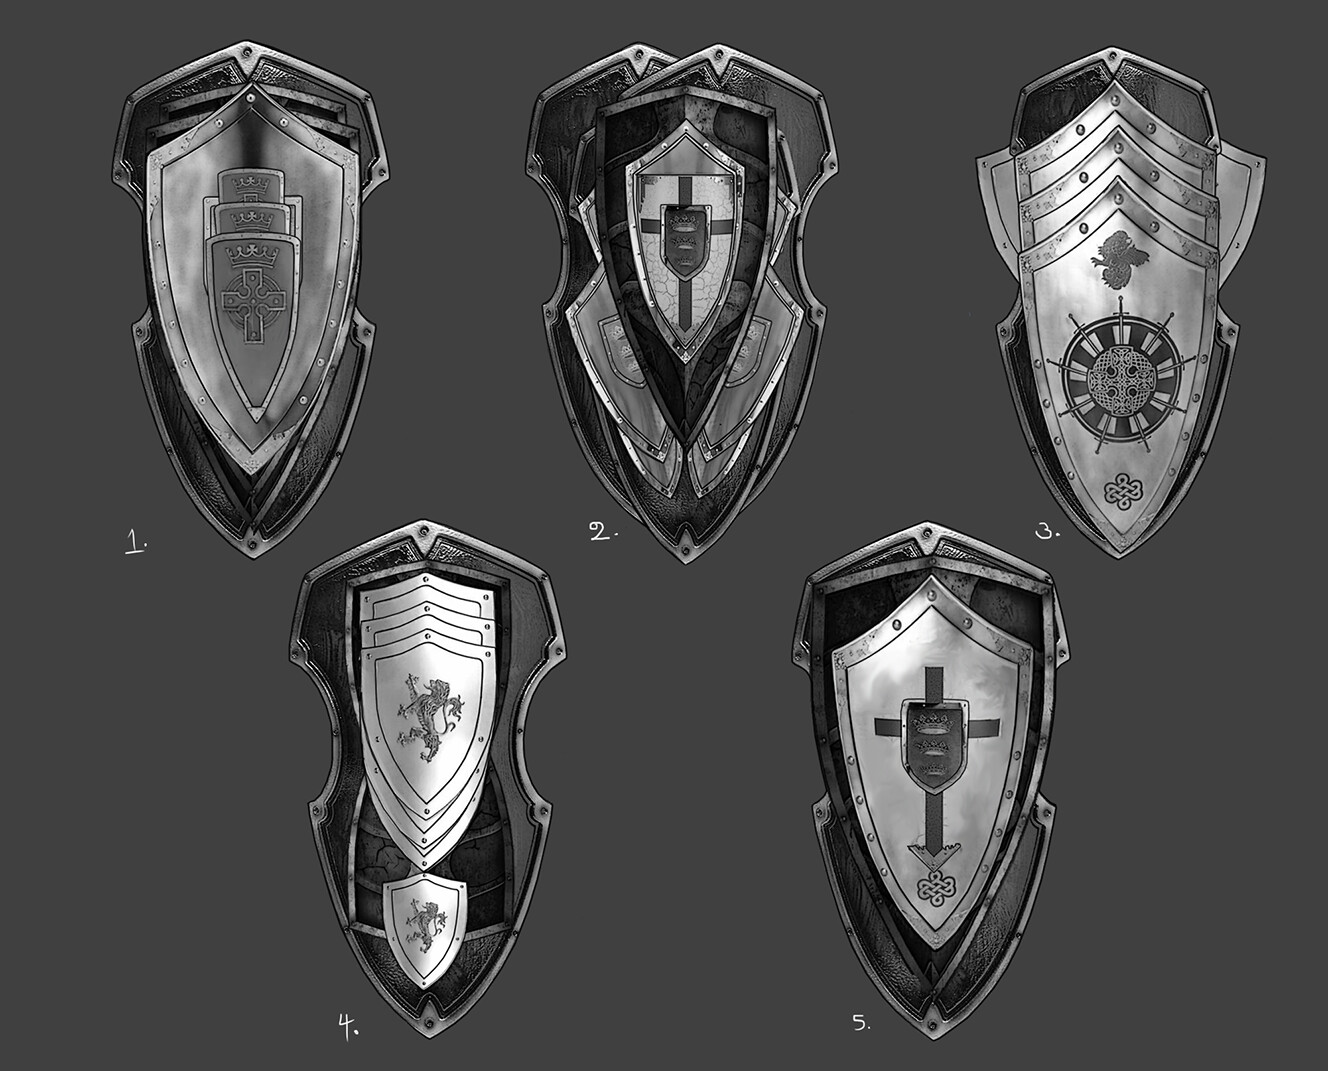 Shield concept variations photobashed and painted over to blend.